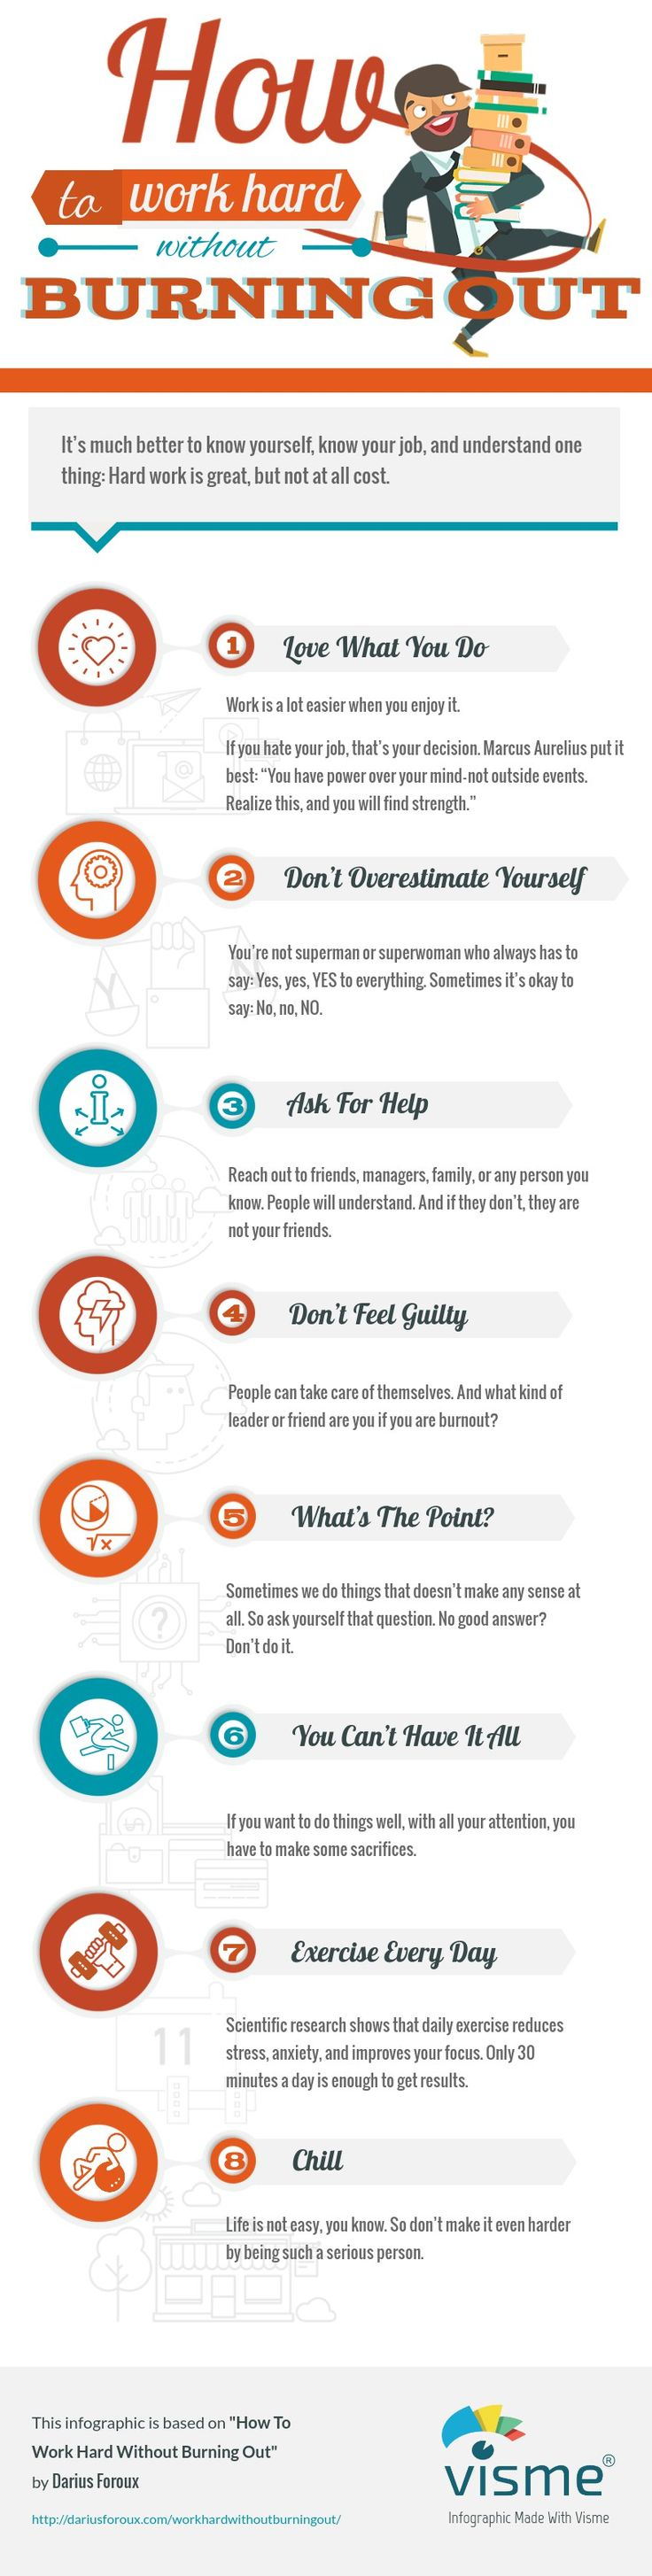 best ideas about how to work hard to work good how to work hard out burning out infographic